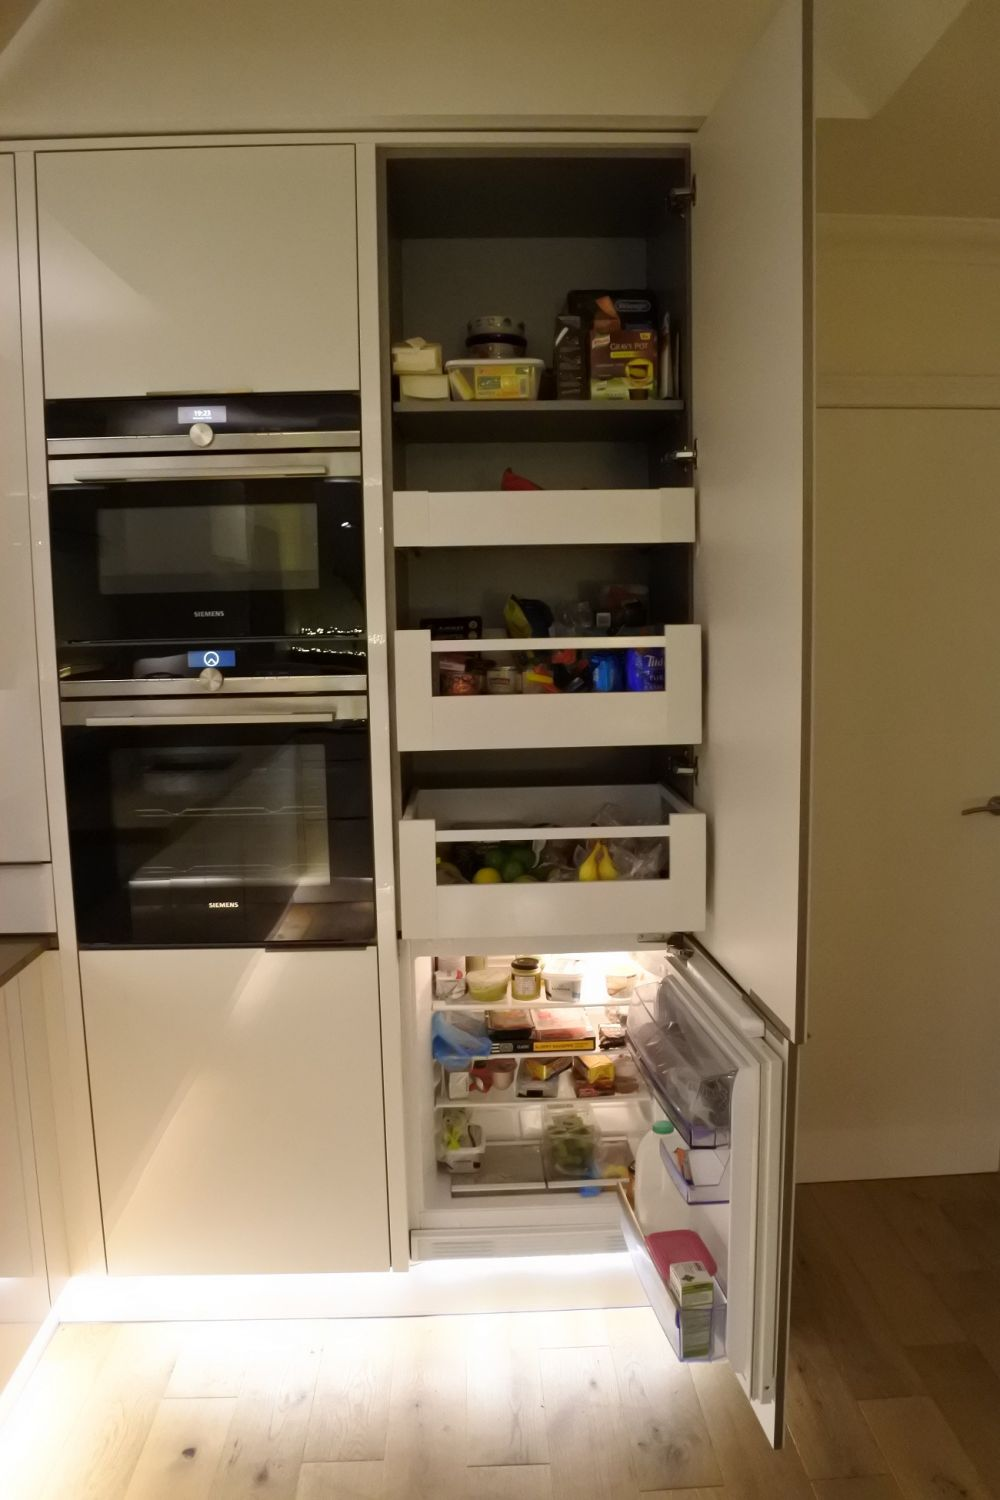 blum-space-tower-with-integrated-neff-fridge